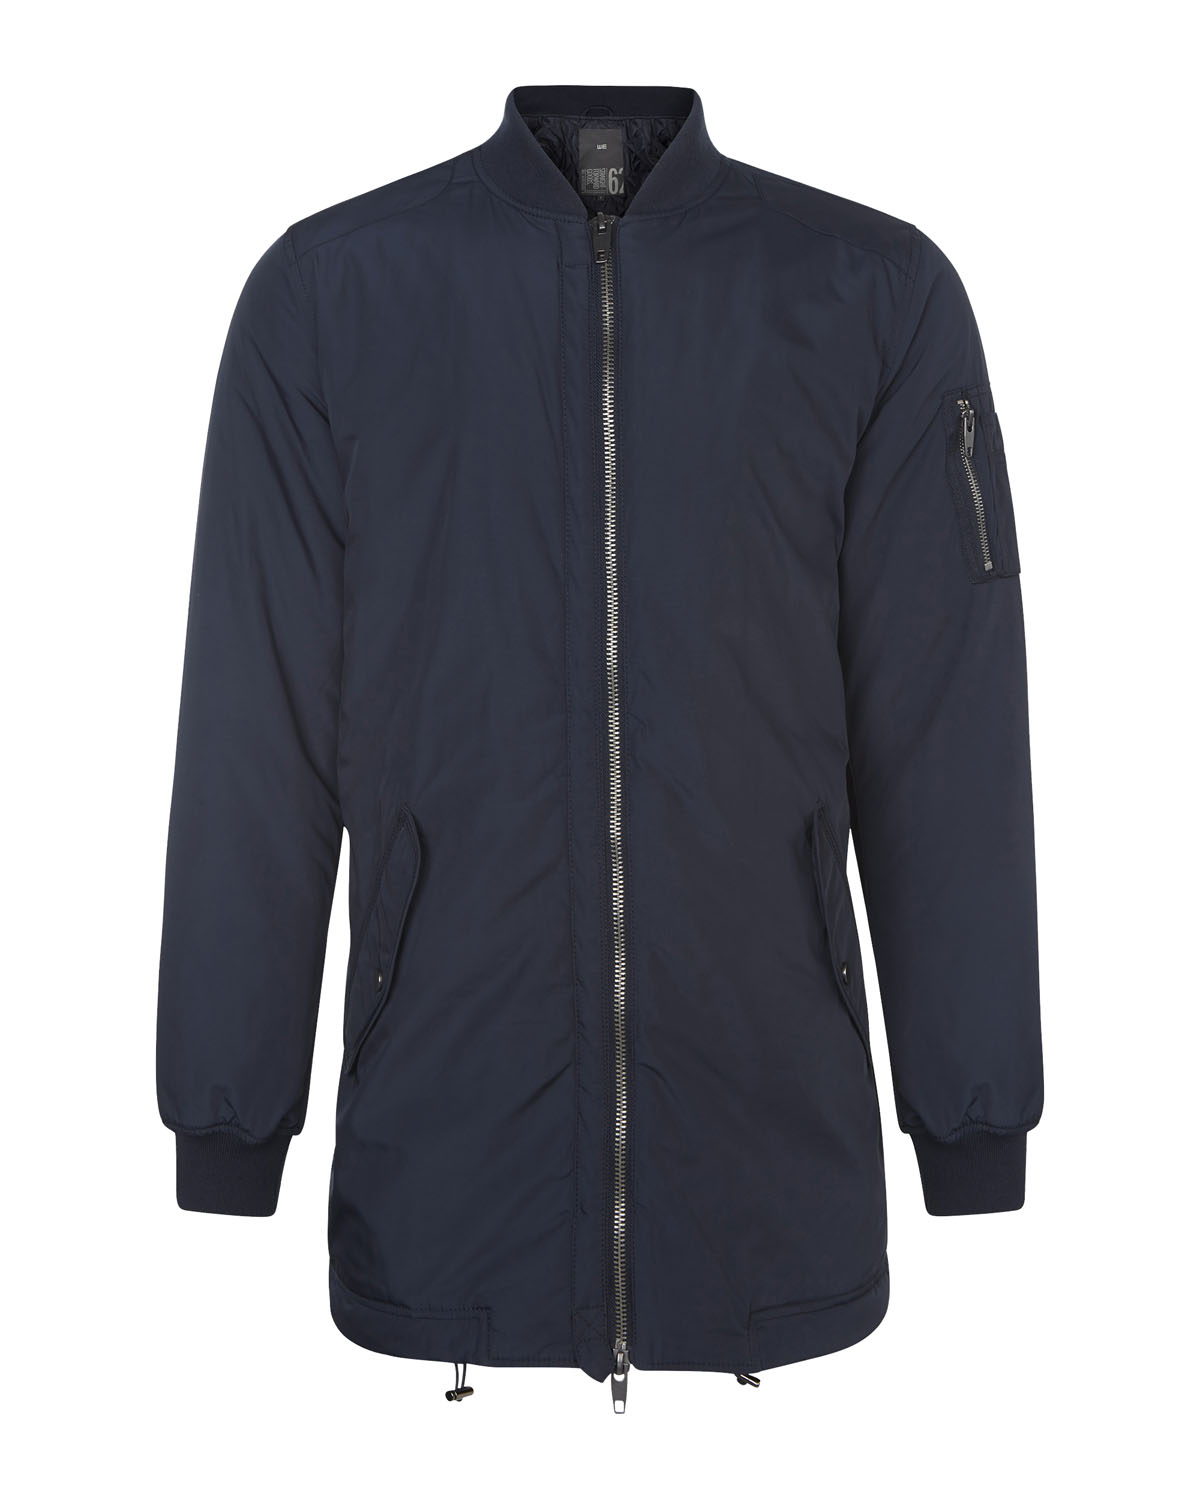 new arrival 76bf7 58125 LANGE HERREN-BOMBERJACKE | 78901681 - WE Fashion